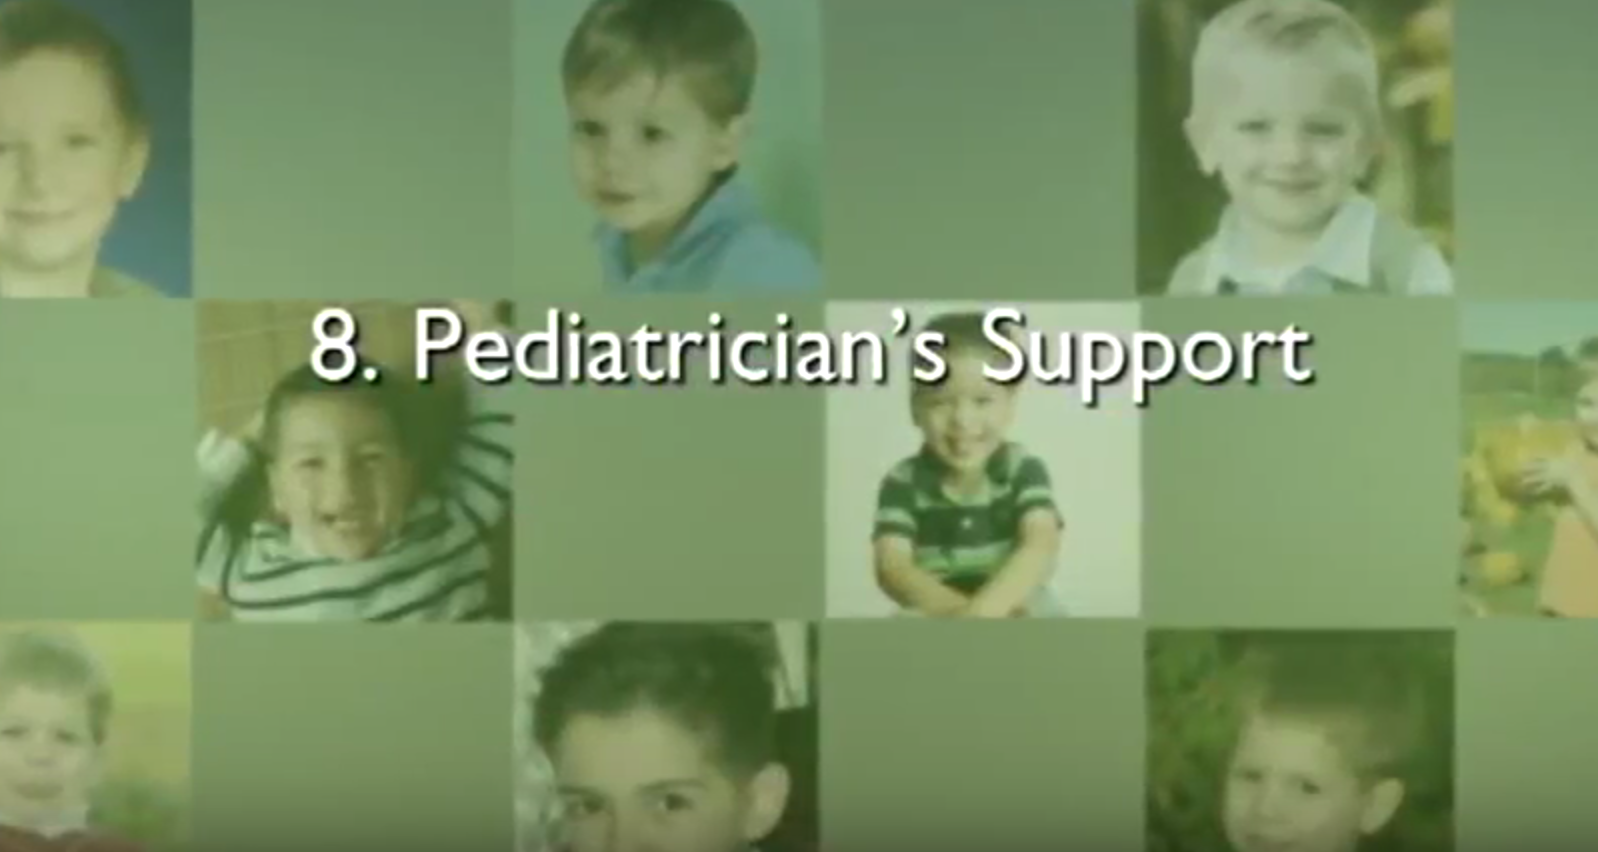 Chapter 8 – Pediatrician's Support